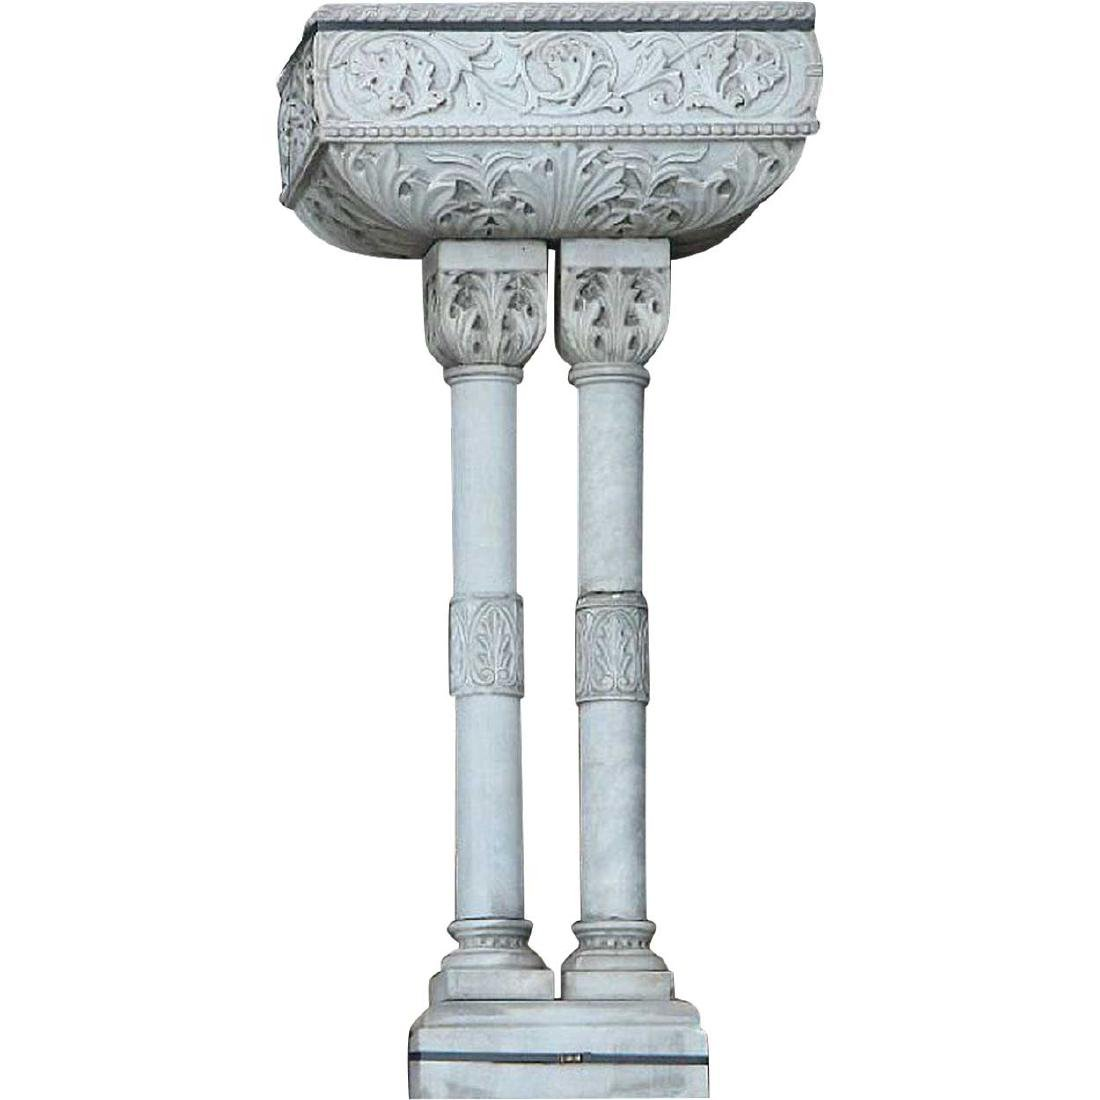 Scandinavian Renaissance Revival Marble Wall Fountain